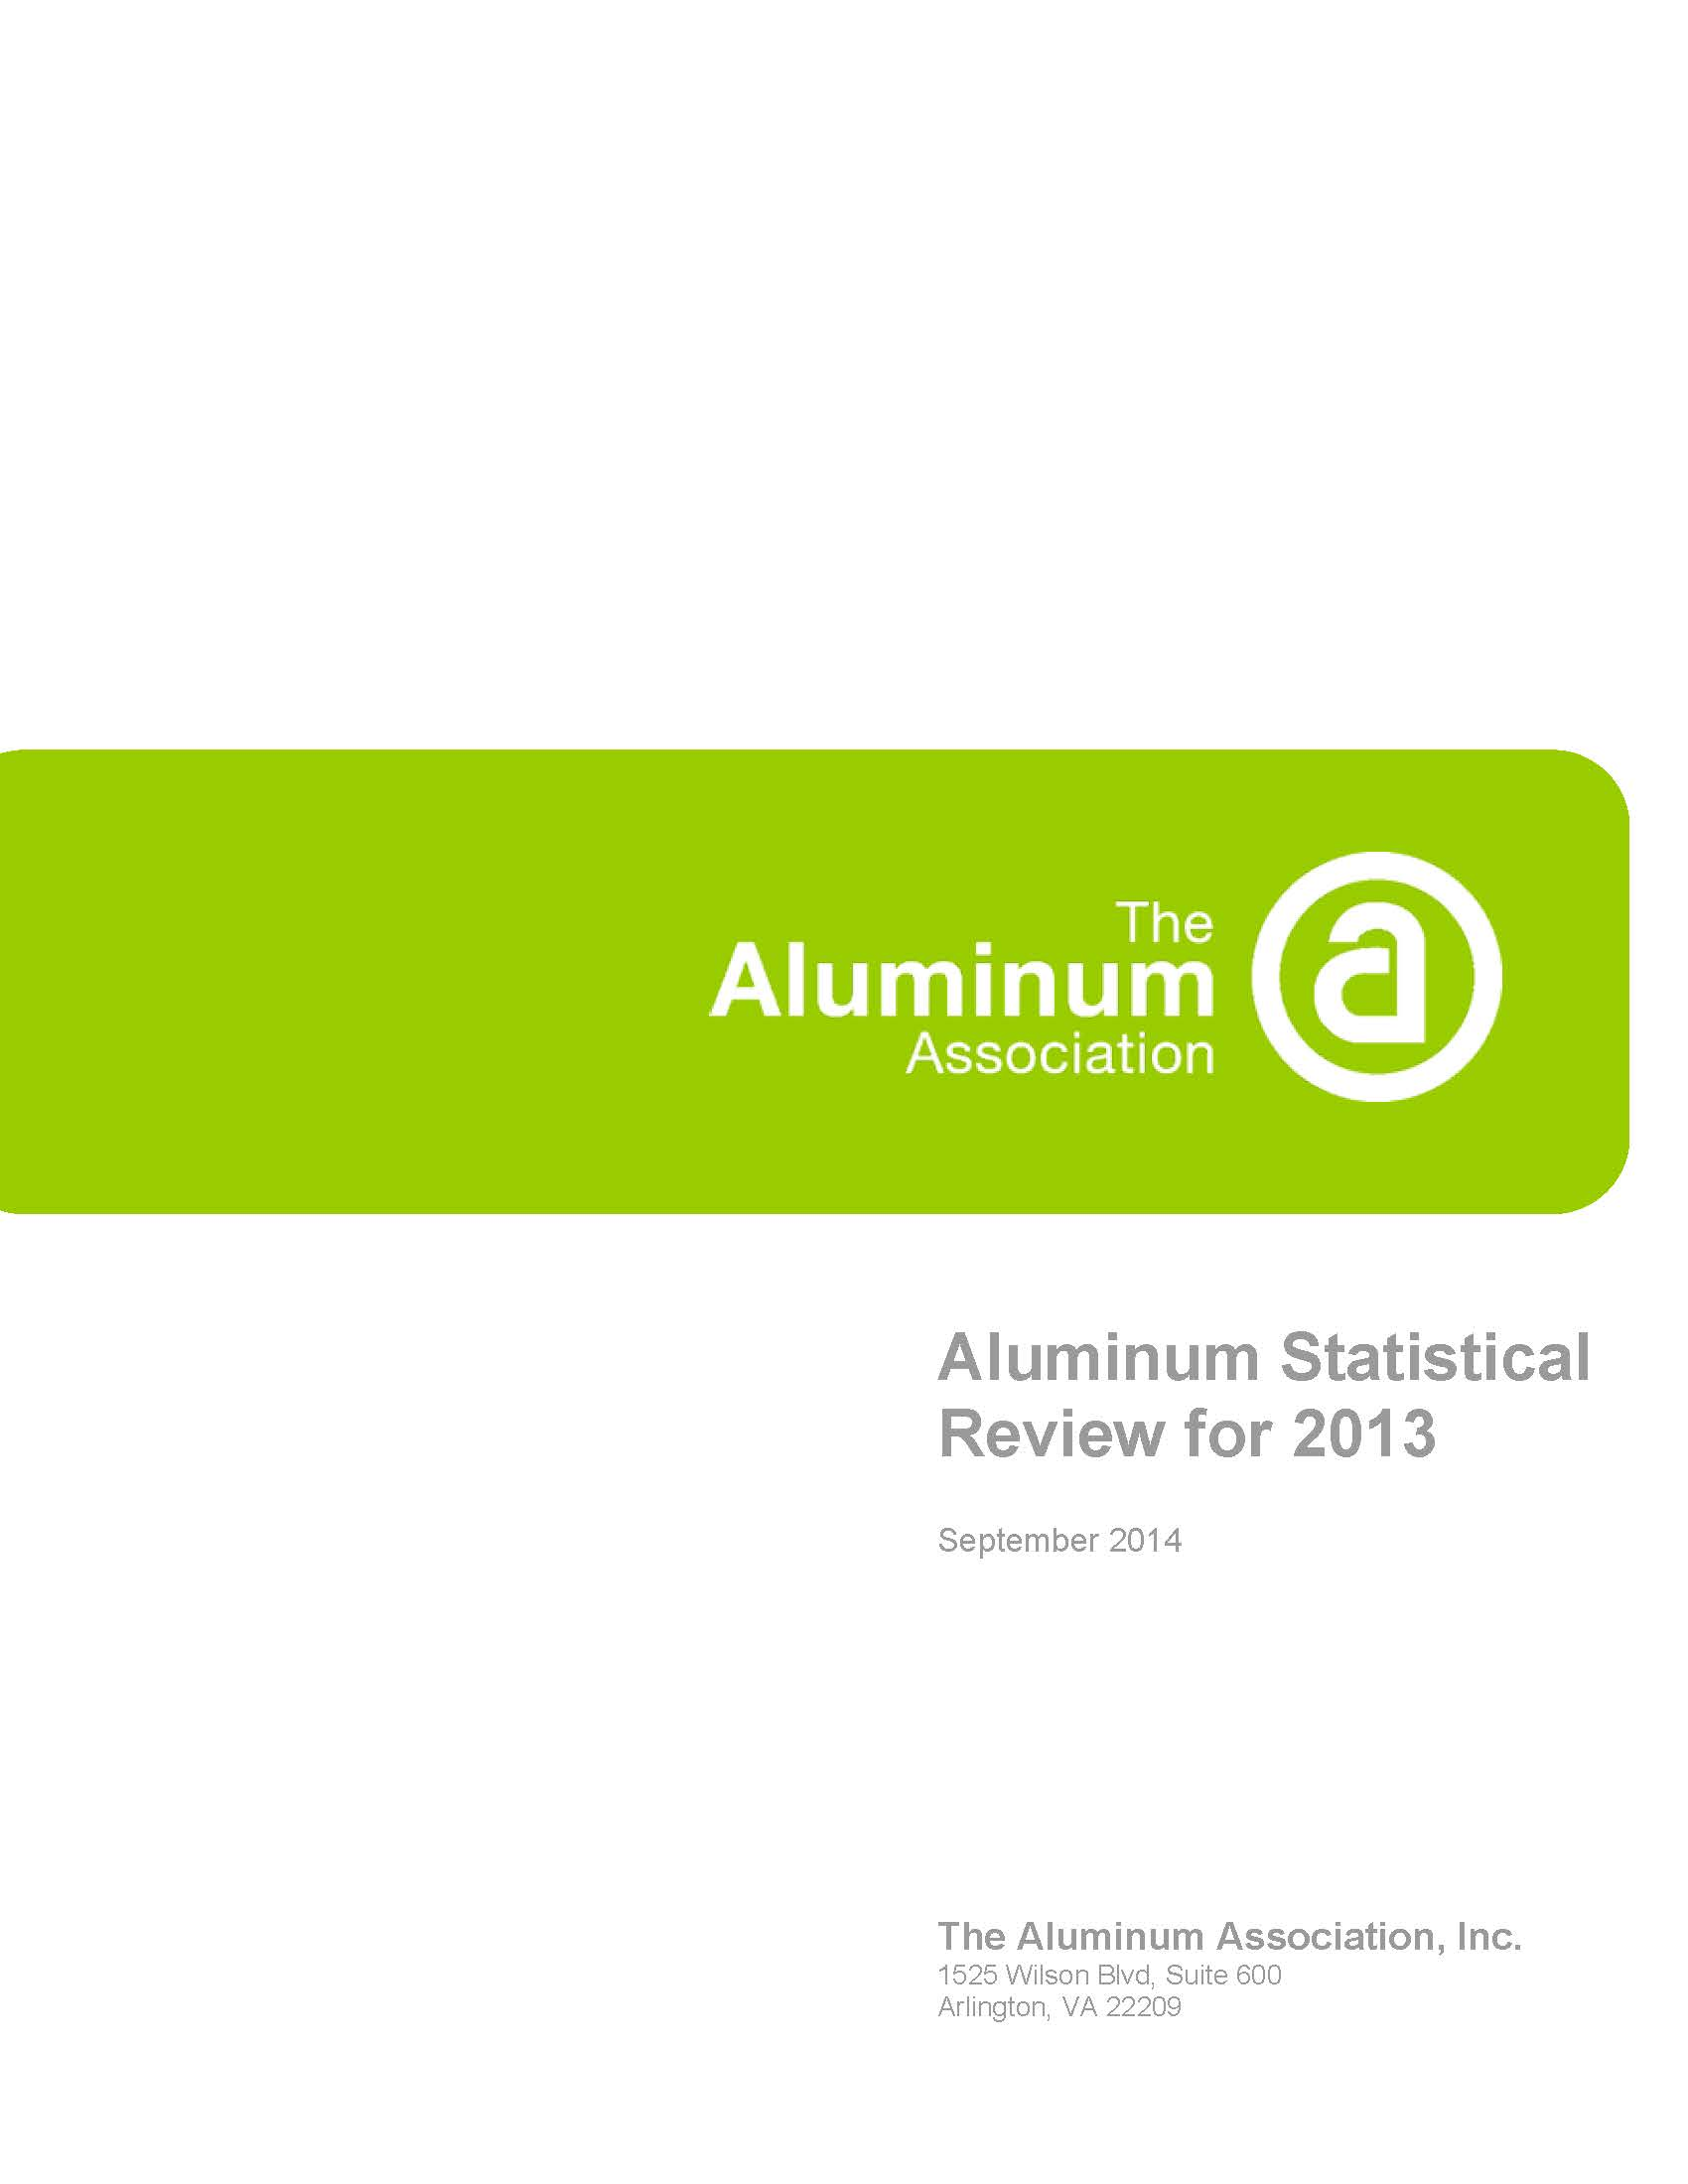 Aluminum Statistical Review for 2013